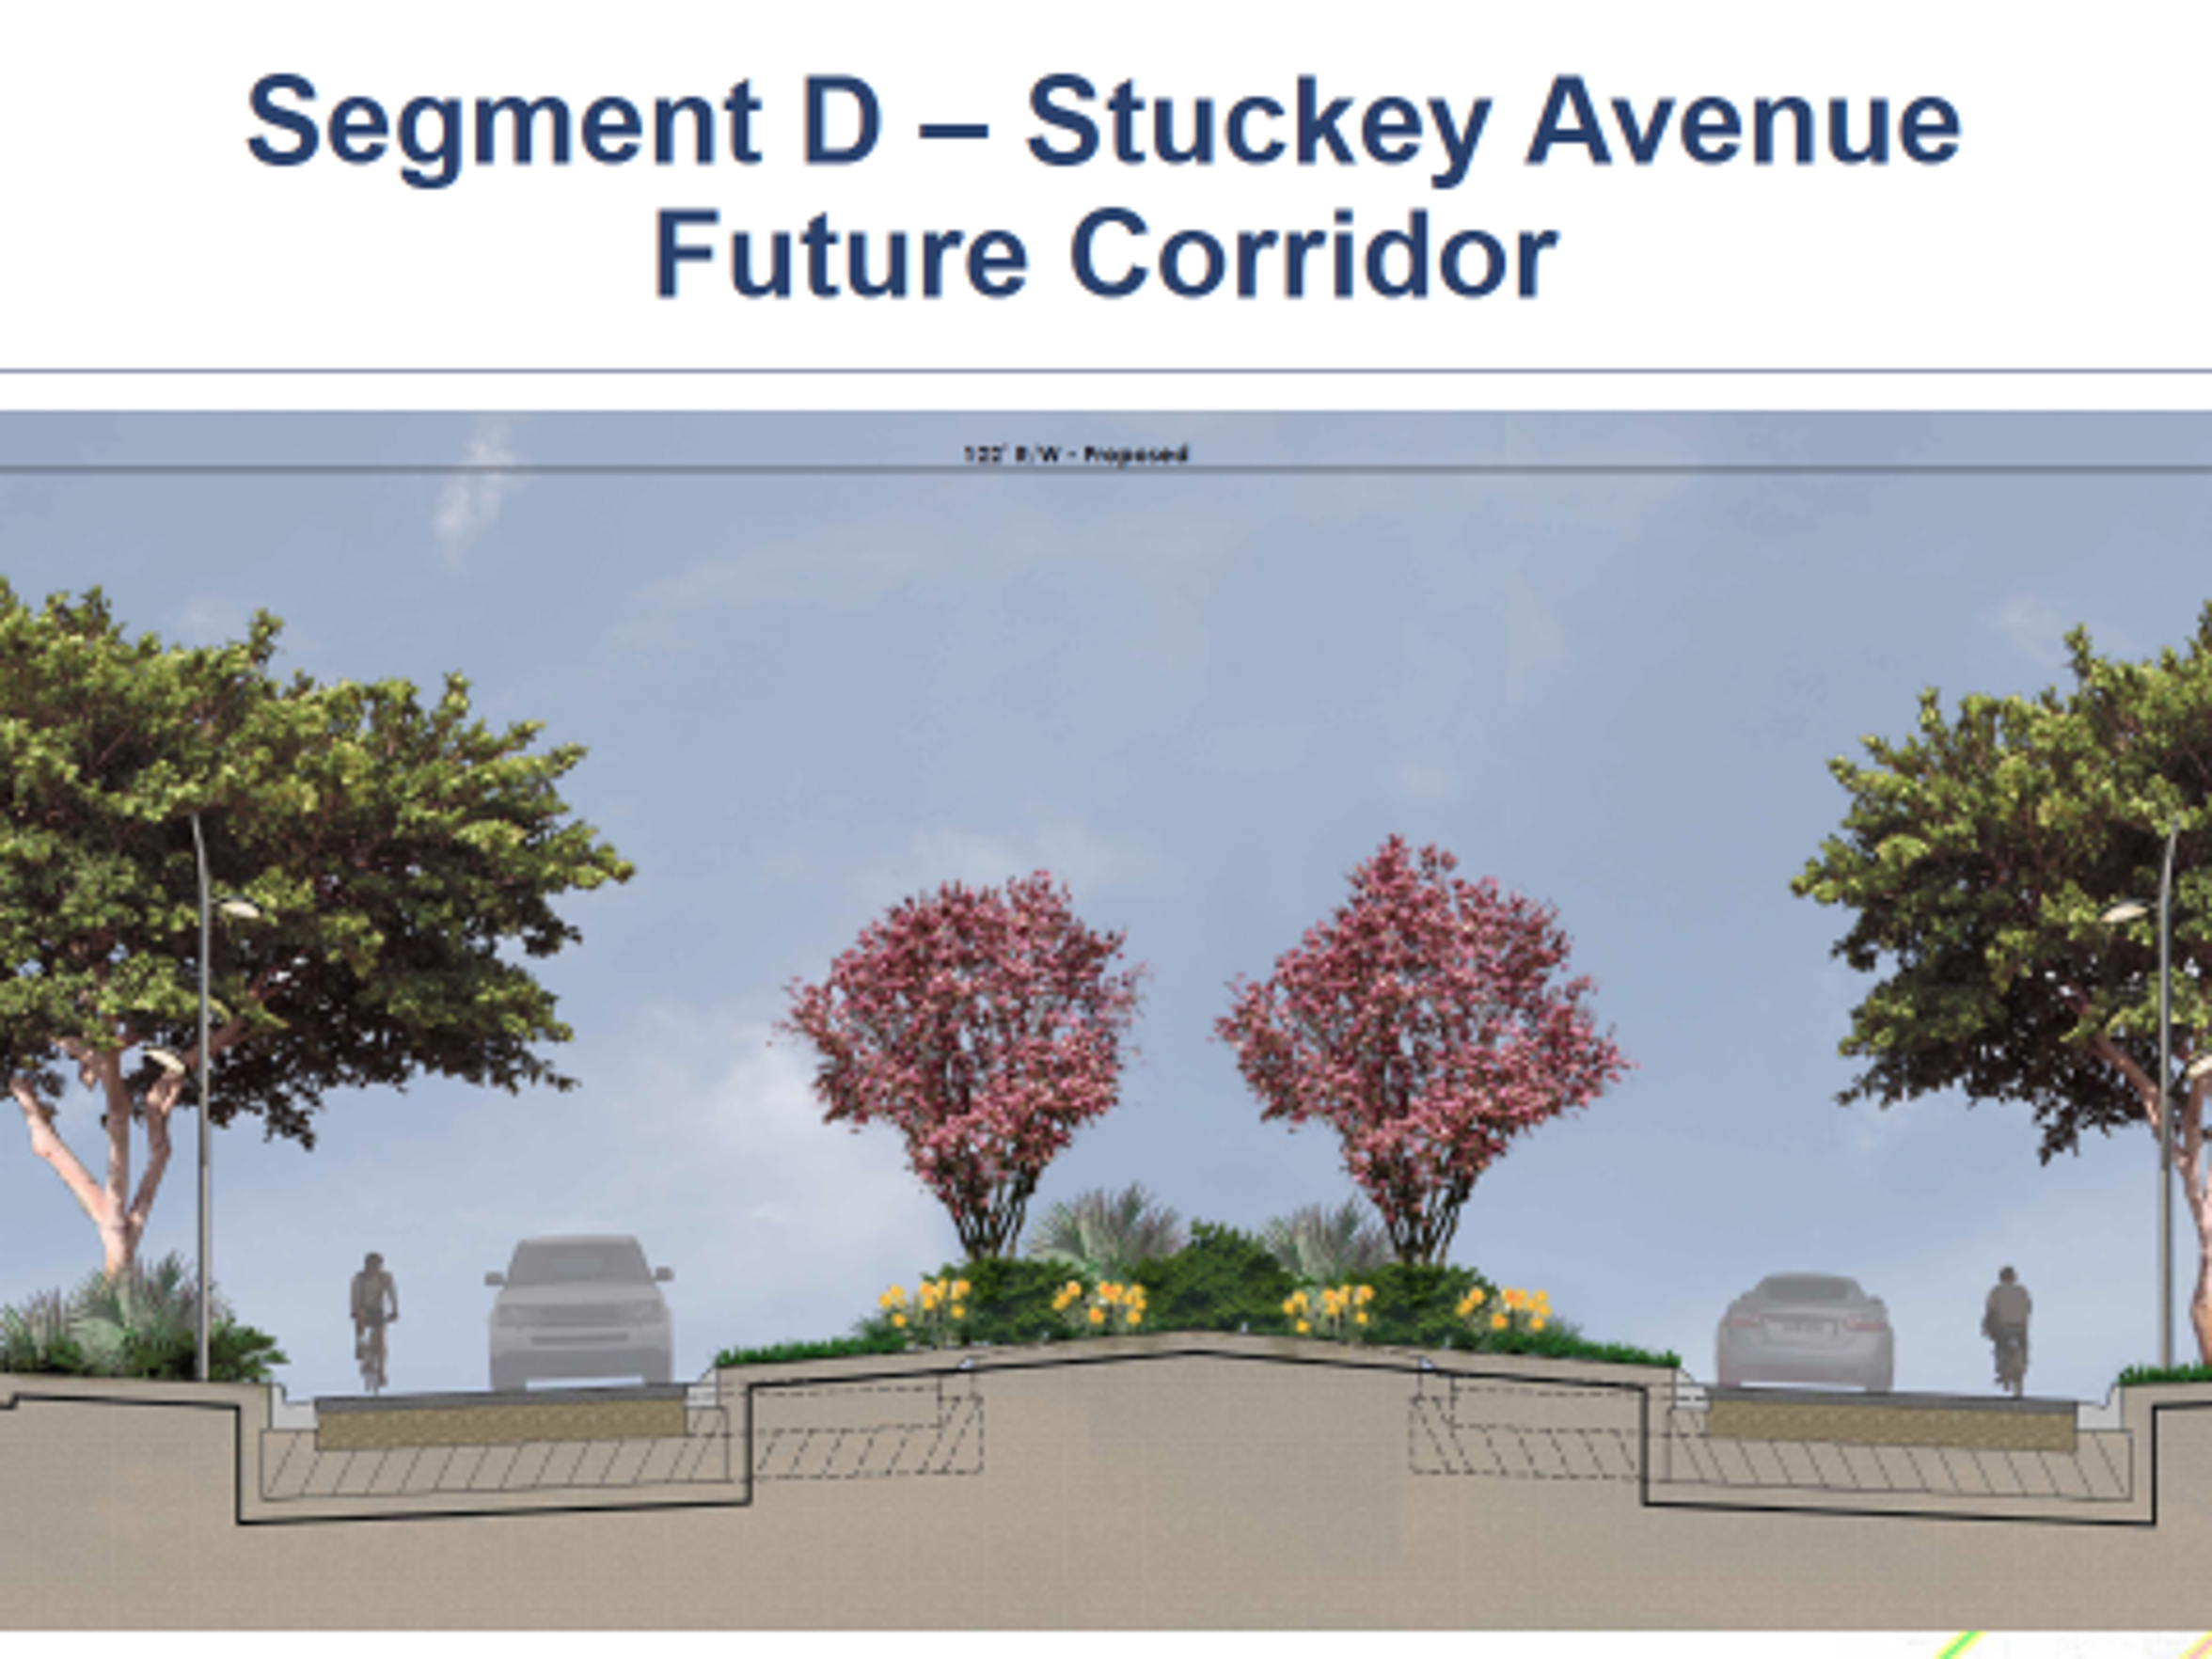 A look at what Stuckey Avenue could look like in the